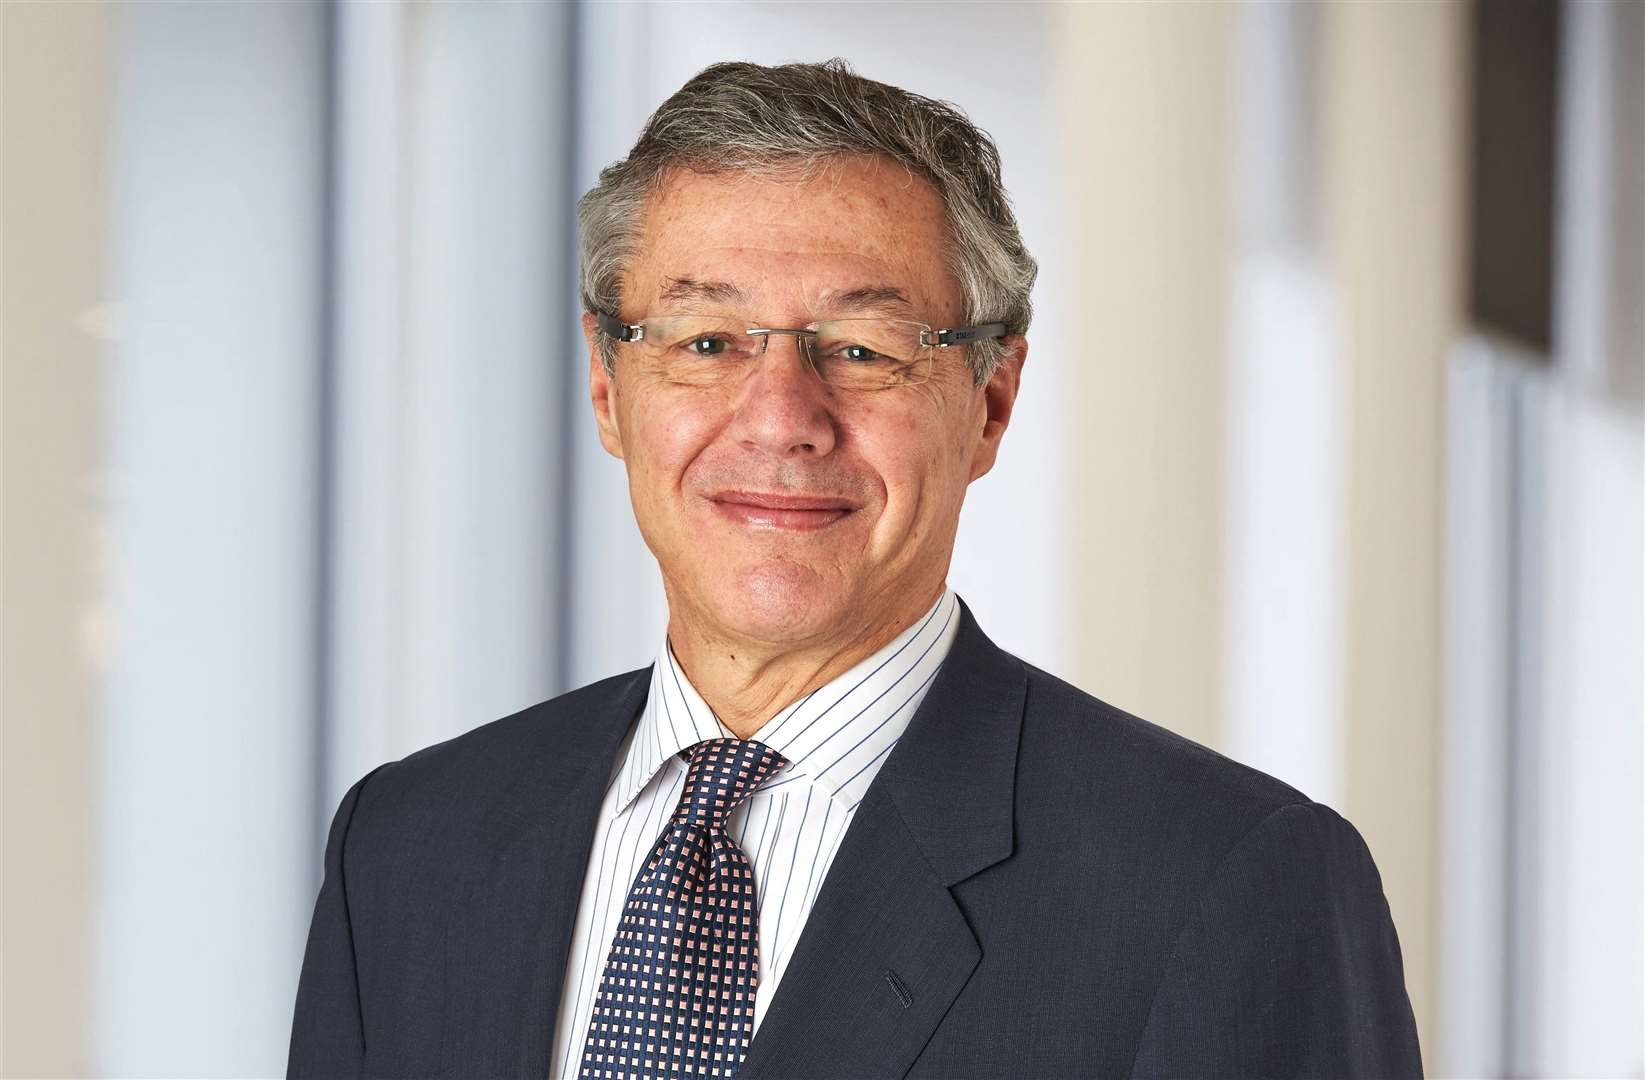 Marc Dunoyer executive director and chief financial officer of Astra Zeneca